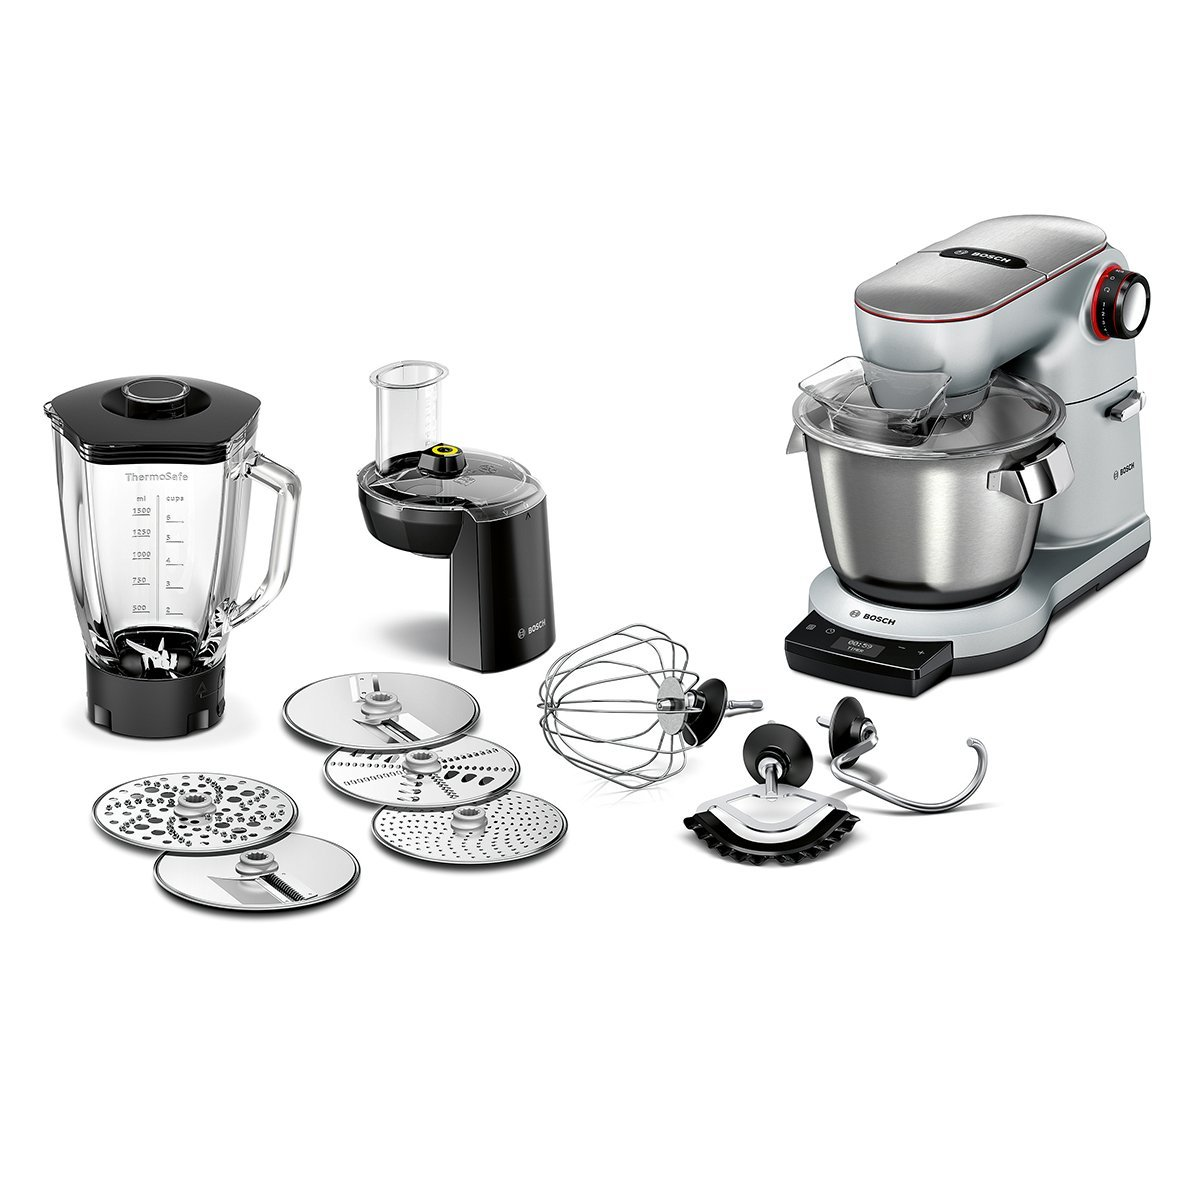 Bosch MUM9DT5S41 OptiMUM: Amazon.es: Hogar